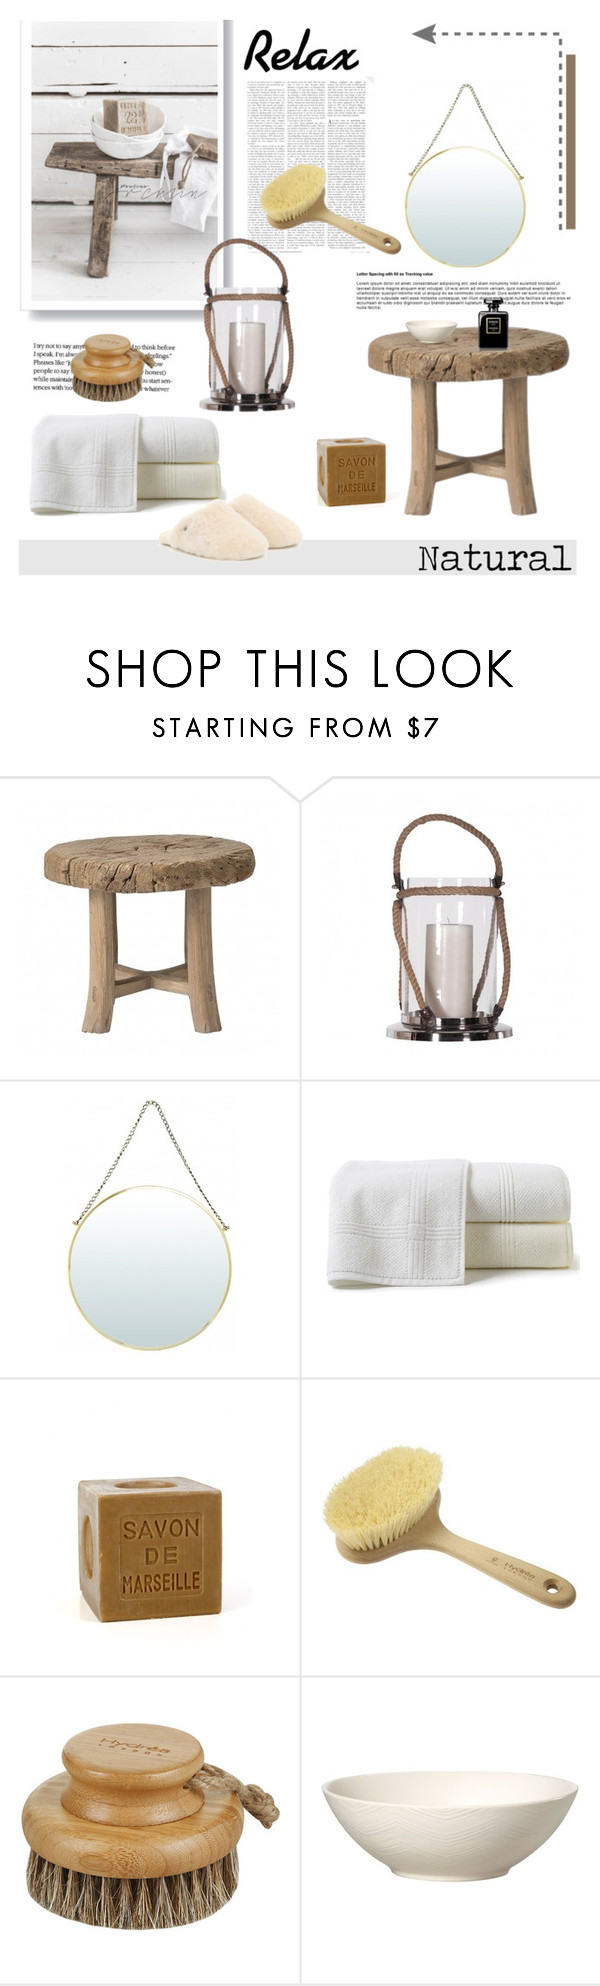 """Natural"" by viva-12 on Polyvore featuring interior, interiors, interior design, home, home decor, interior decorating, Peacock Alley, Hydrea London and UGG Australia"